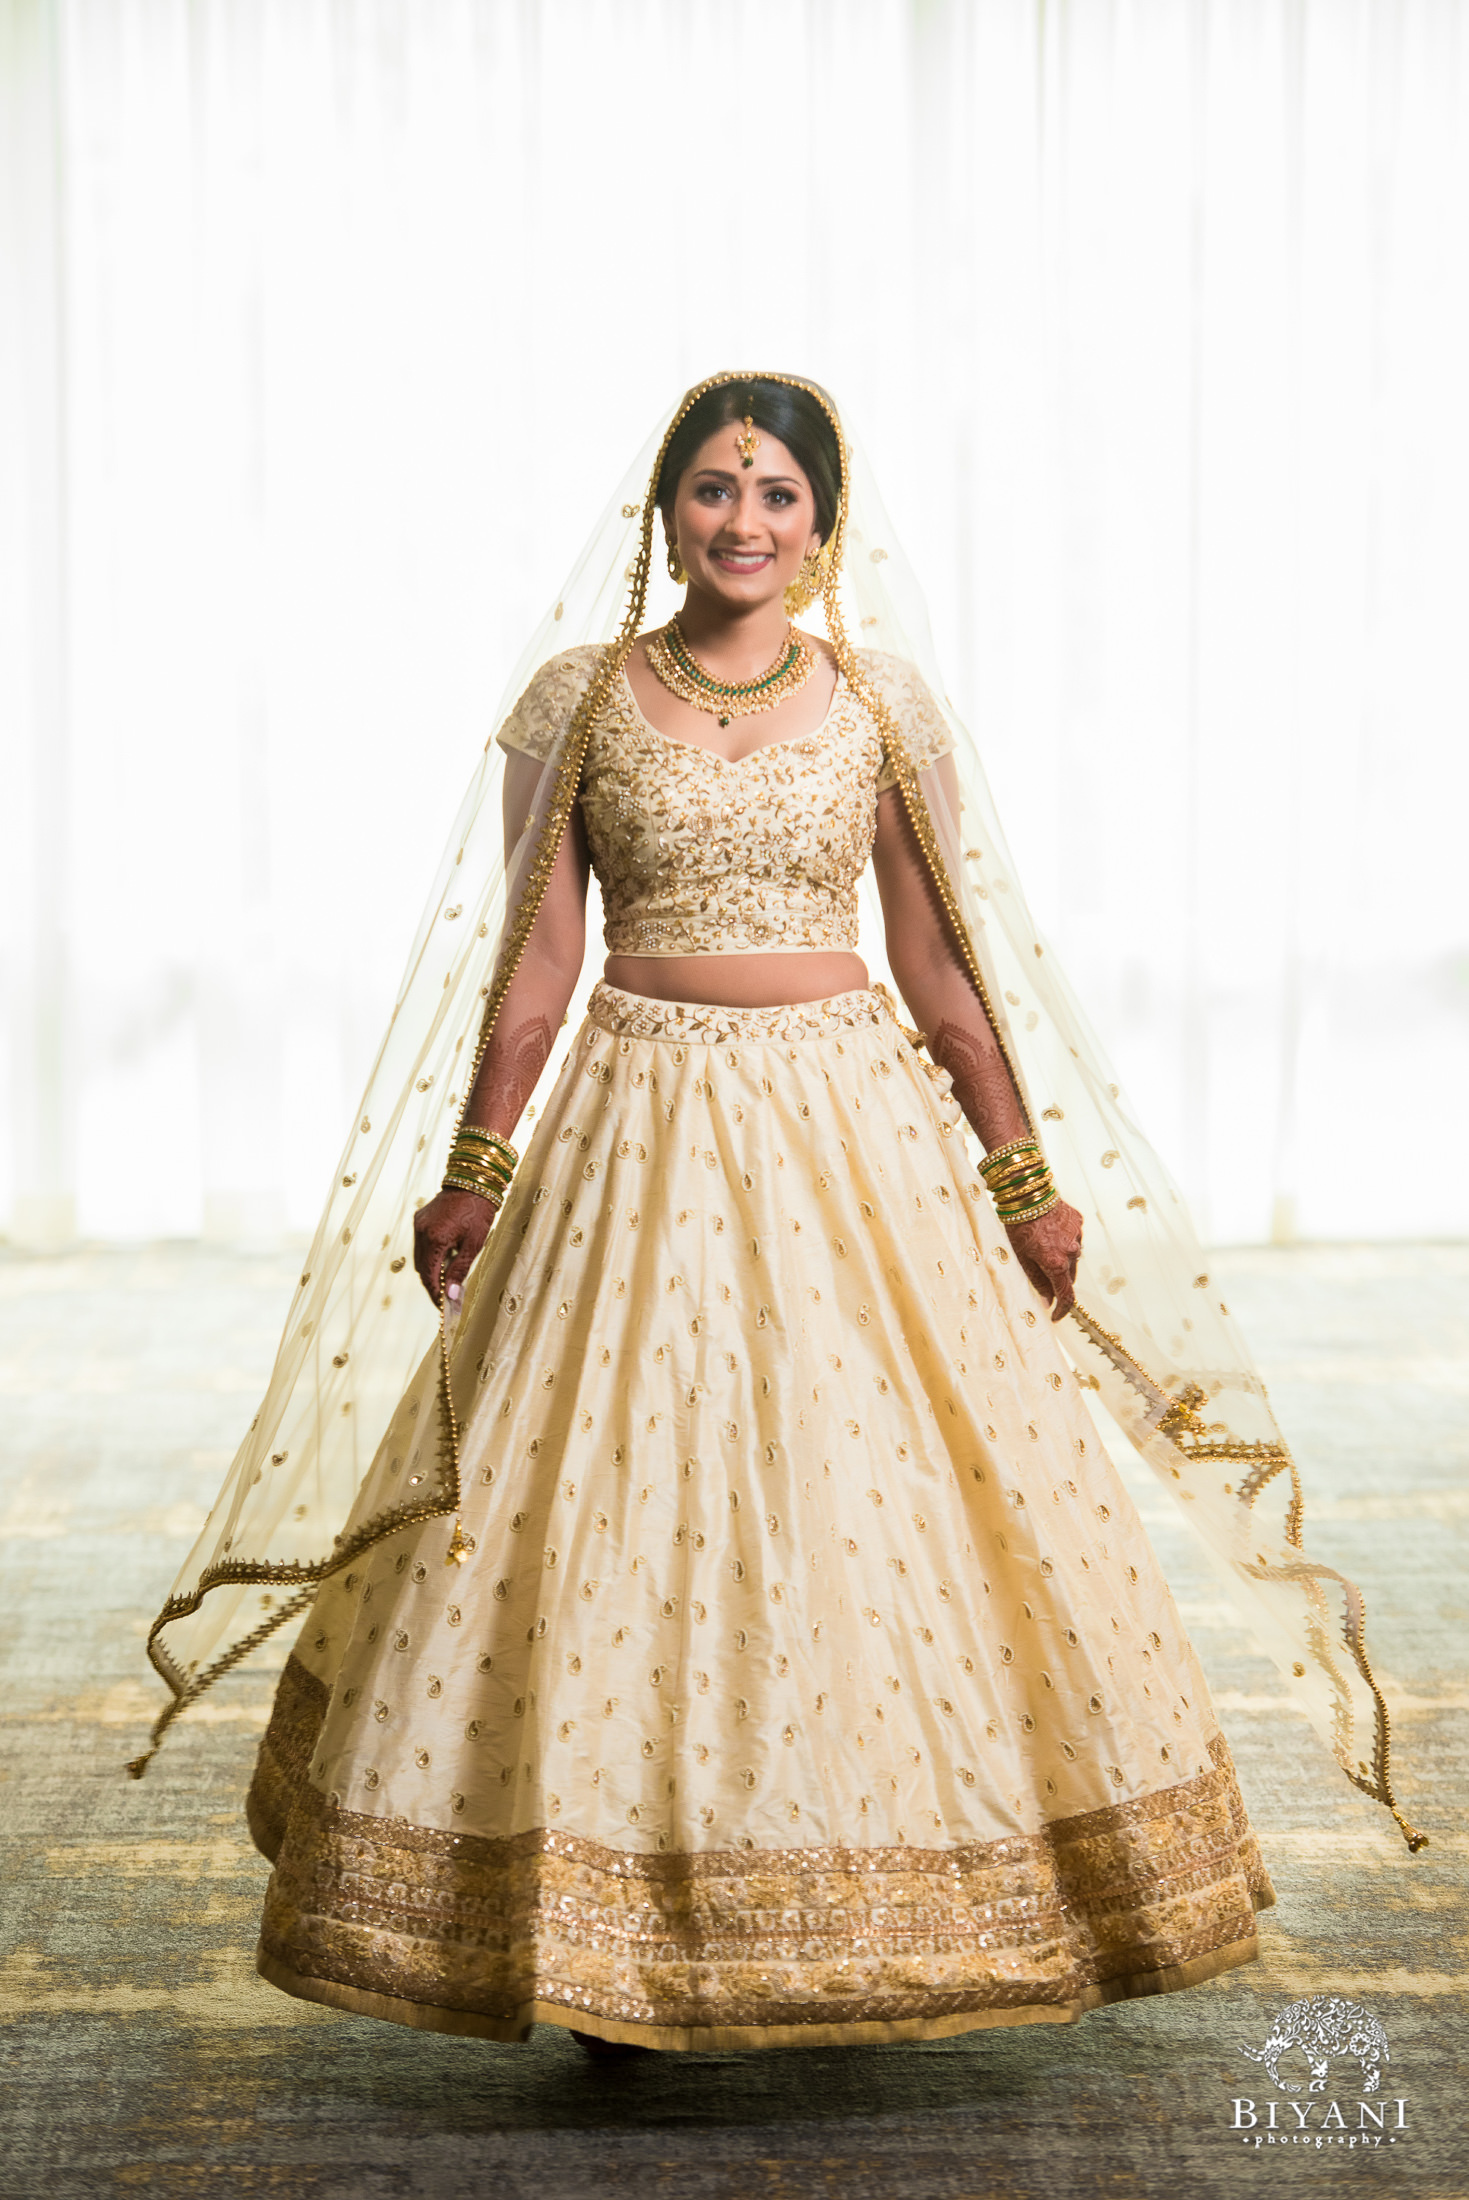 Indian bride in her wedding ceremony outfit